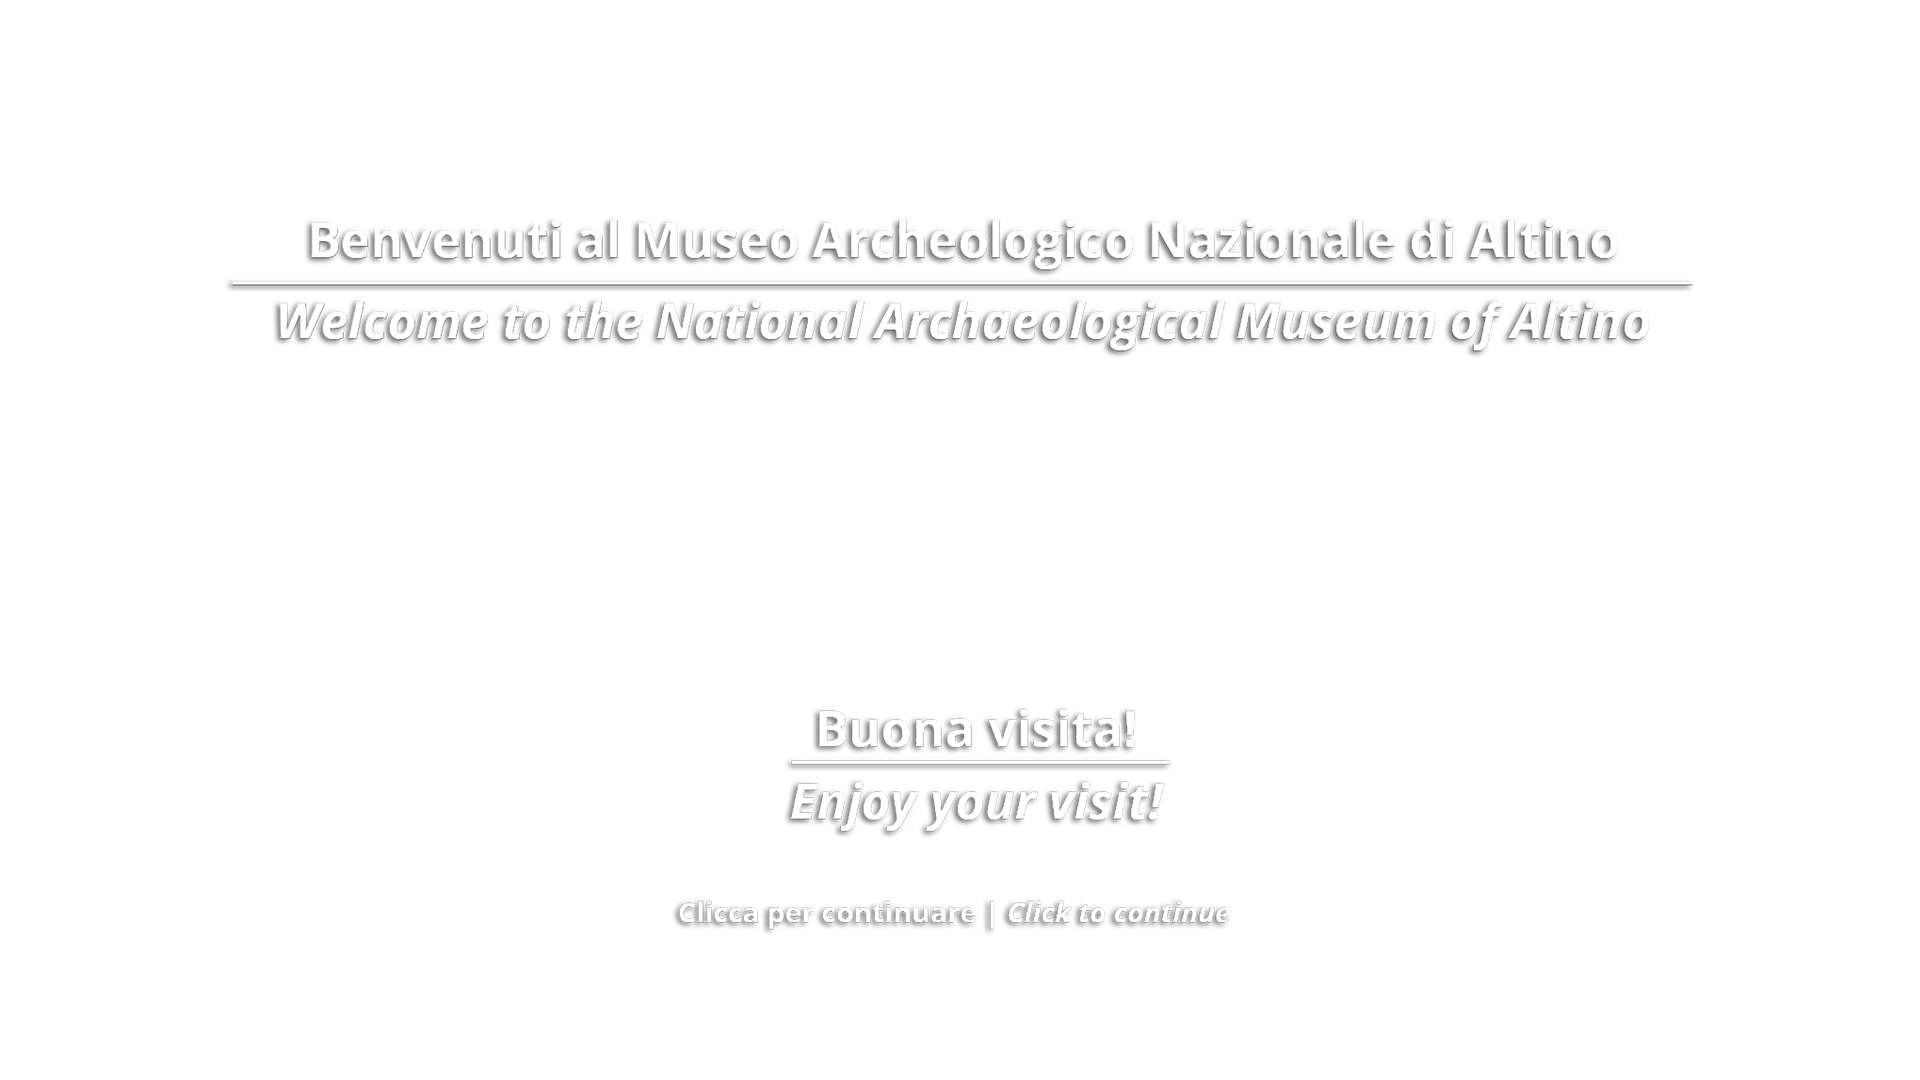 Benvenuti al museo archeologico nazionale di Altino | Wellcome to the National Archaeological Museum of Altino